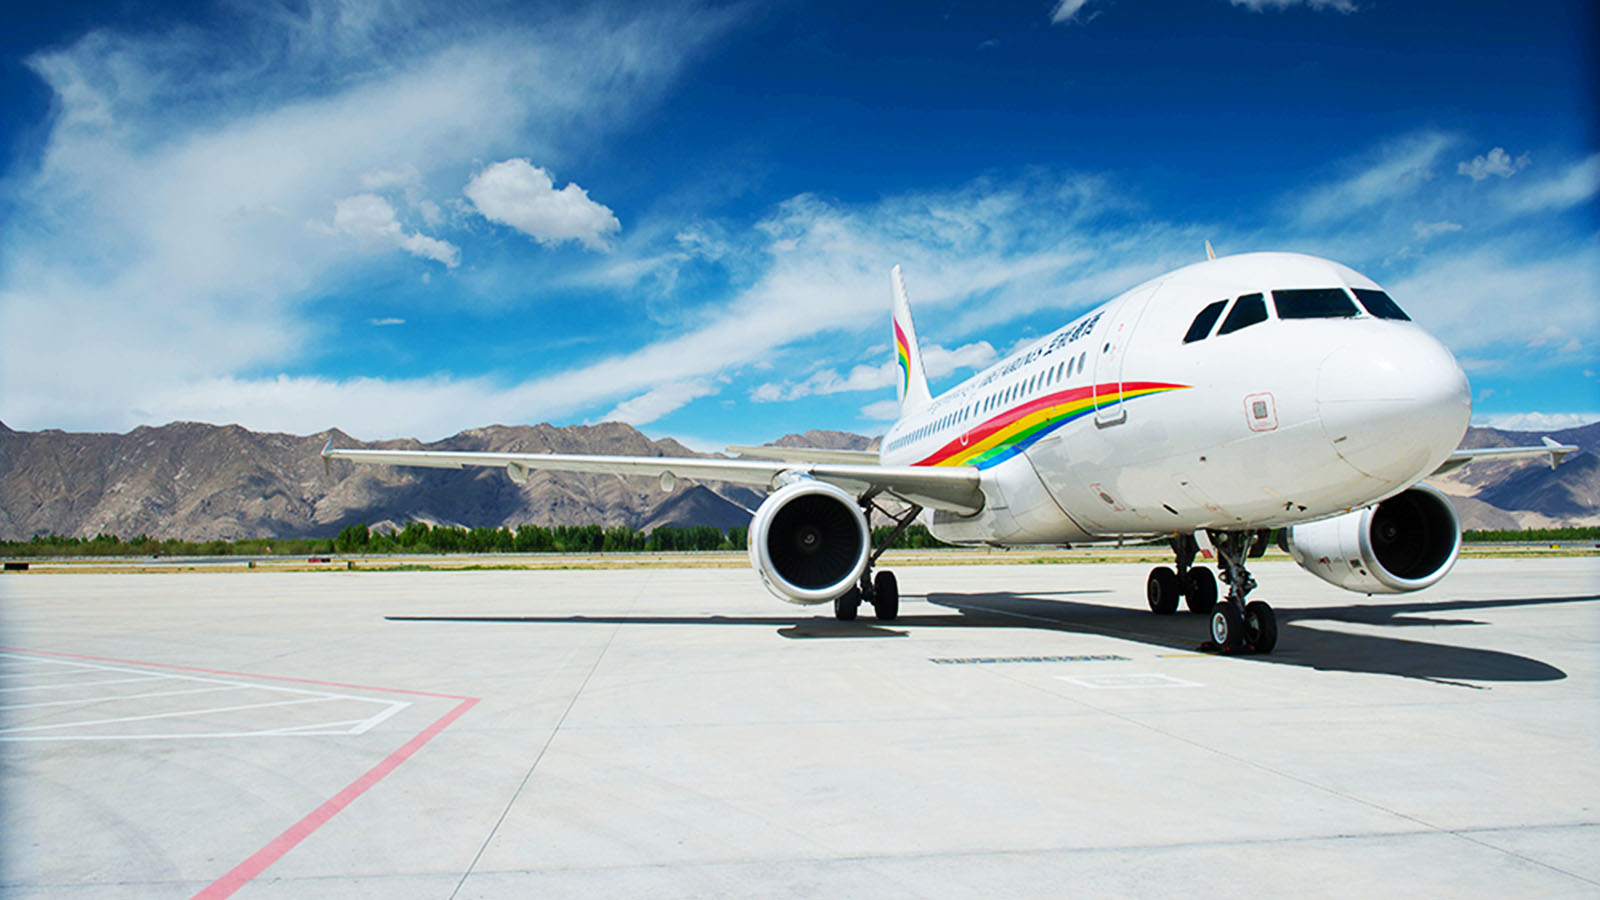 China's Tibet Airlines starts direct flight on Chengdu-Kathmandu route